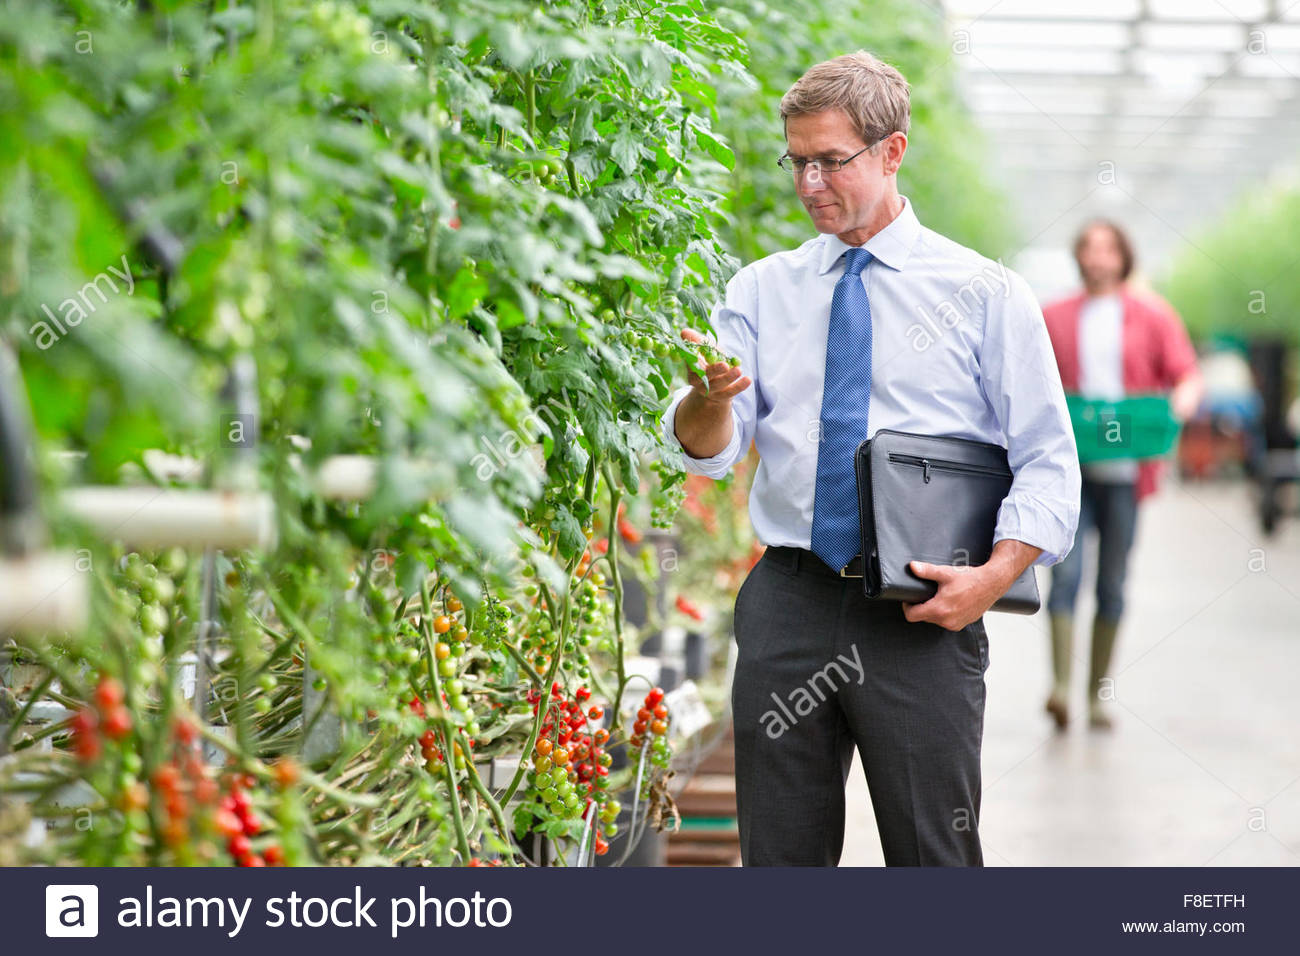 Businessman inspecting tomato plants in greenhouse - Stock Image